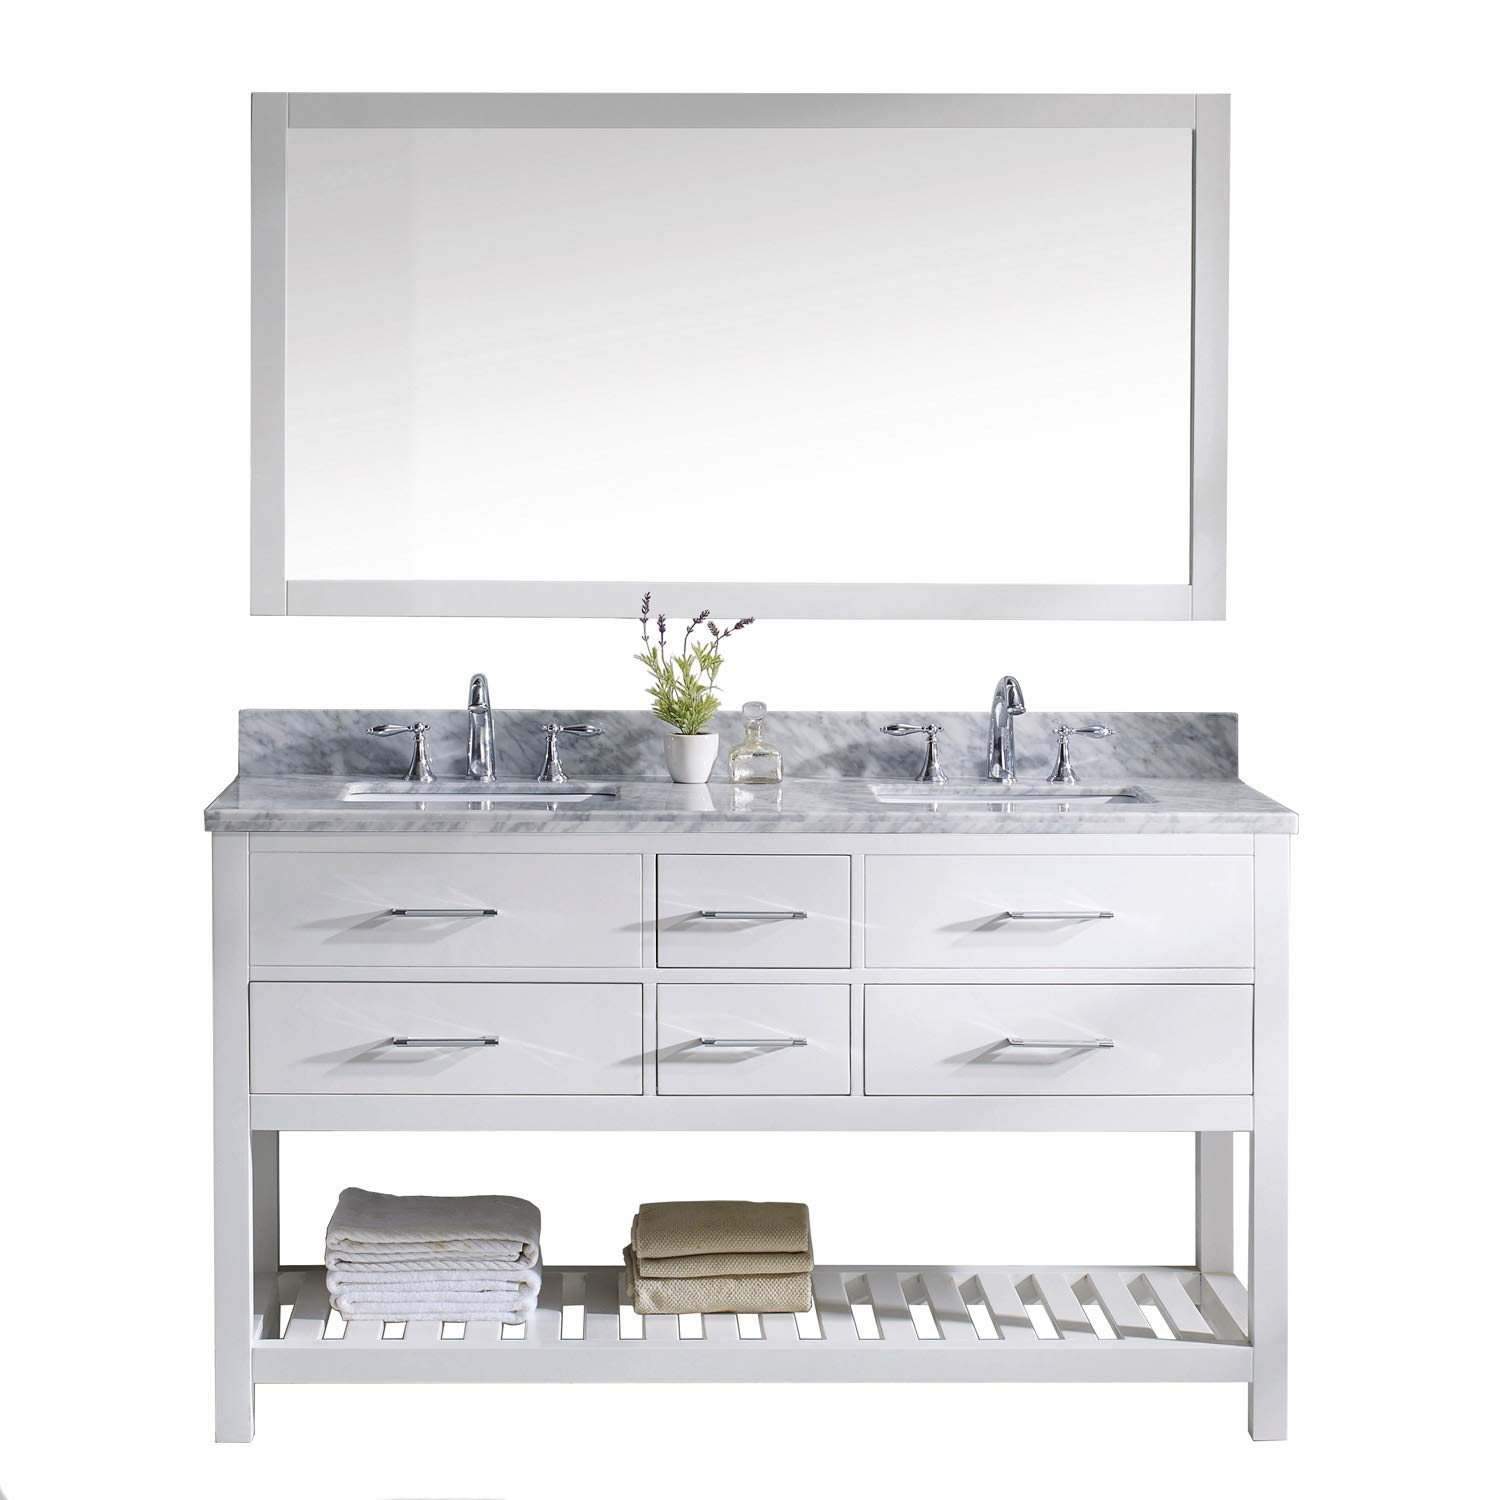 Virtu USA Caroline Estate 60 inch Double Sink Bathroom Vanity Set in White w Square Undermount Sink, Italian Carrara White Marble Countertop, No Faucet, 1 Mirror – MD-2260-WMSQ-WH-010